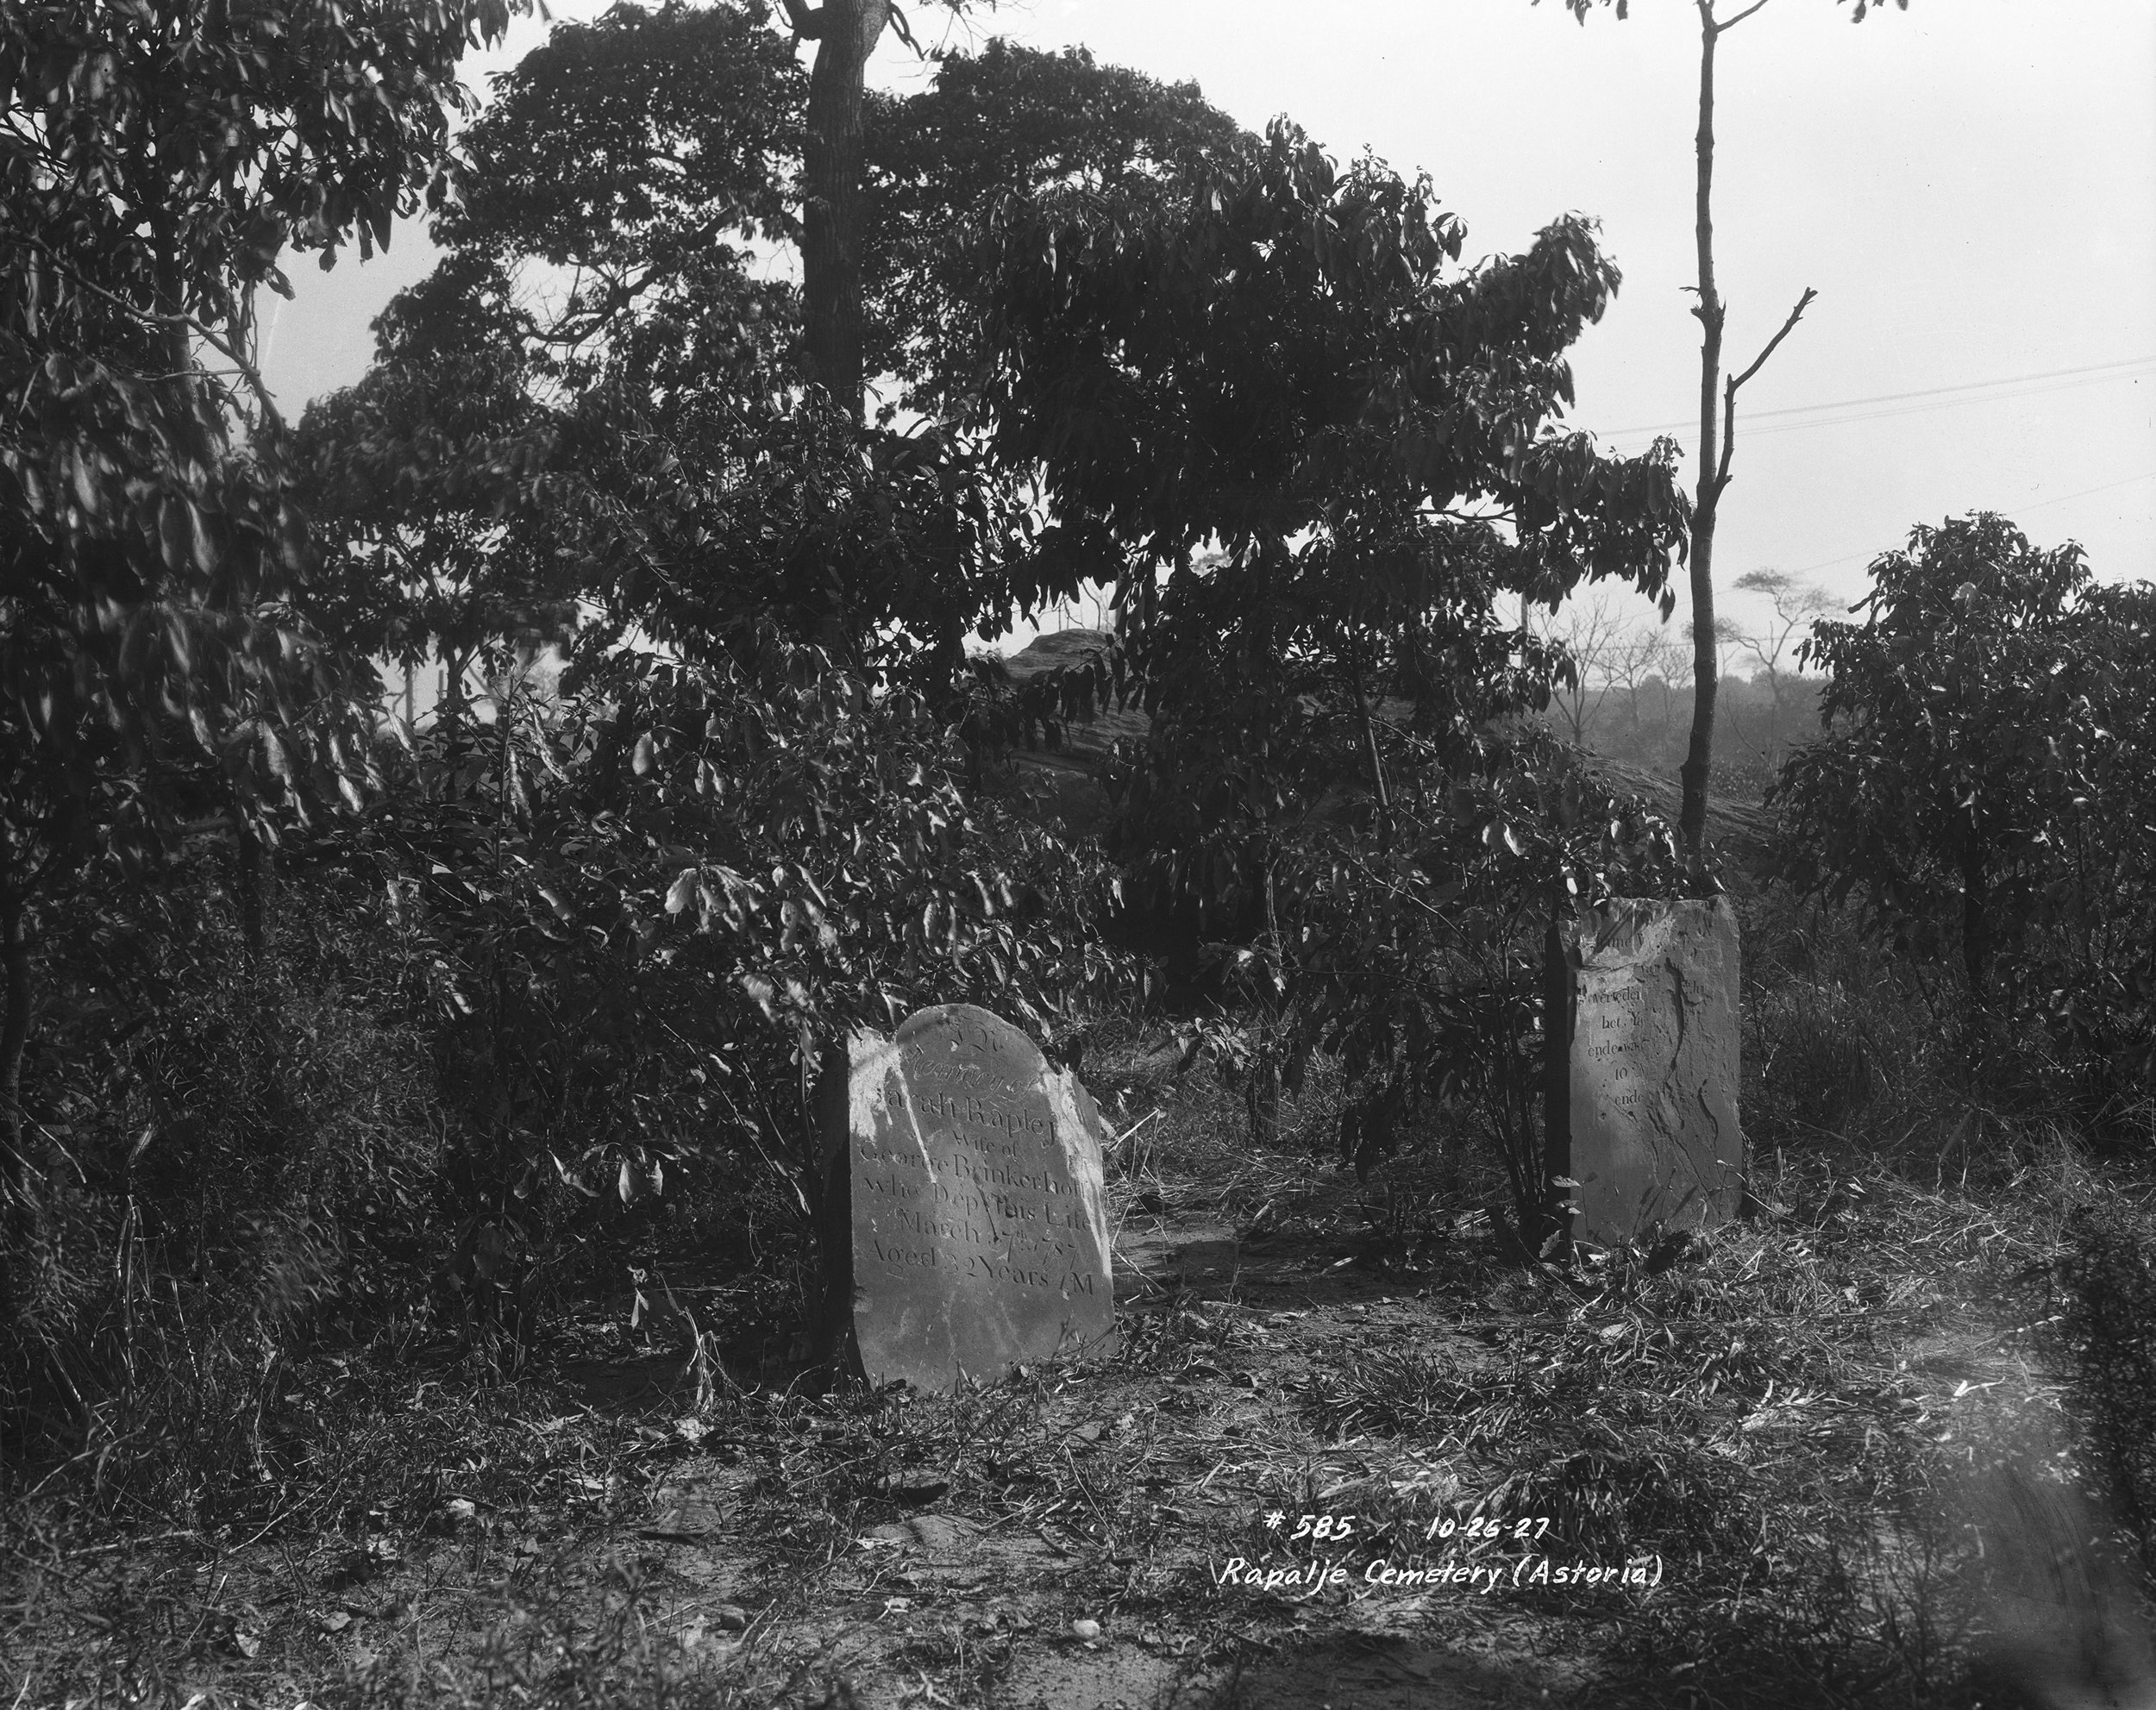 Rapalje Cemetery, Astoria, Queens, October 26, 1927. Borough President Queens Collection, NYC Municipal Archives.